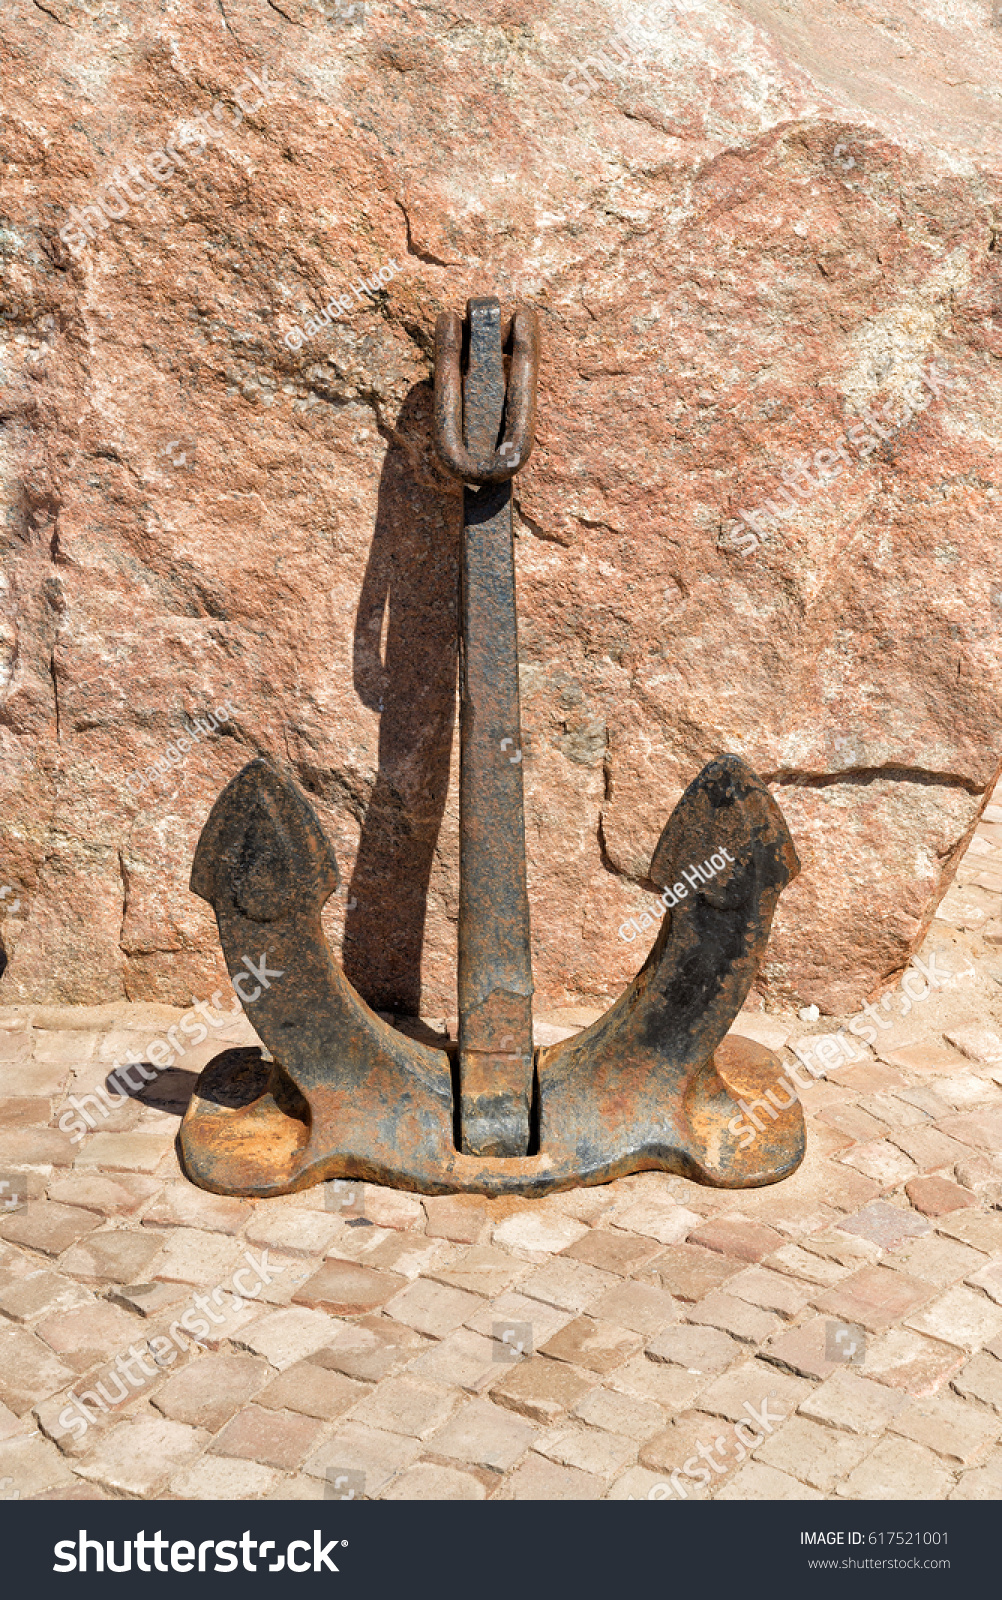 Stockless anchor in front of a boulder at the entrance of a restaurant in Swakopmund, Namibia.